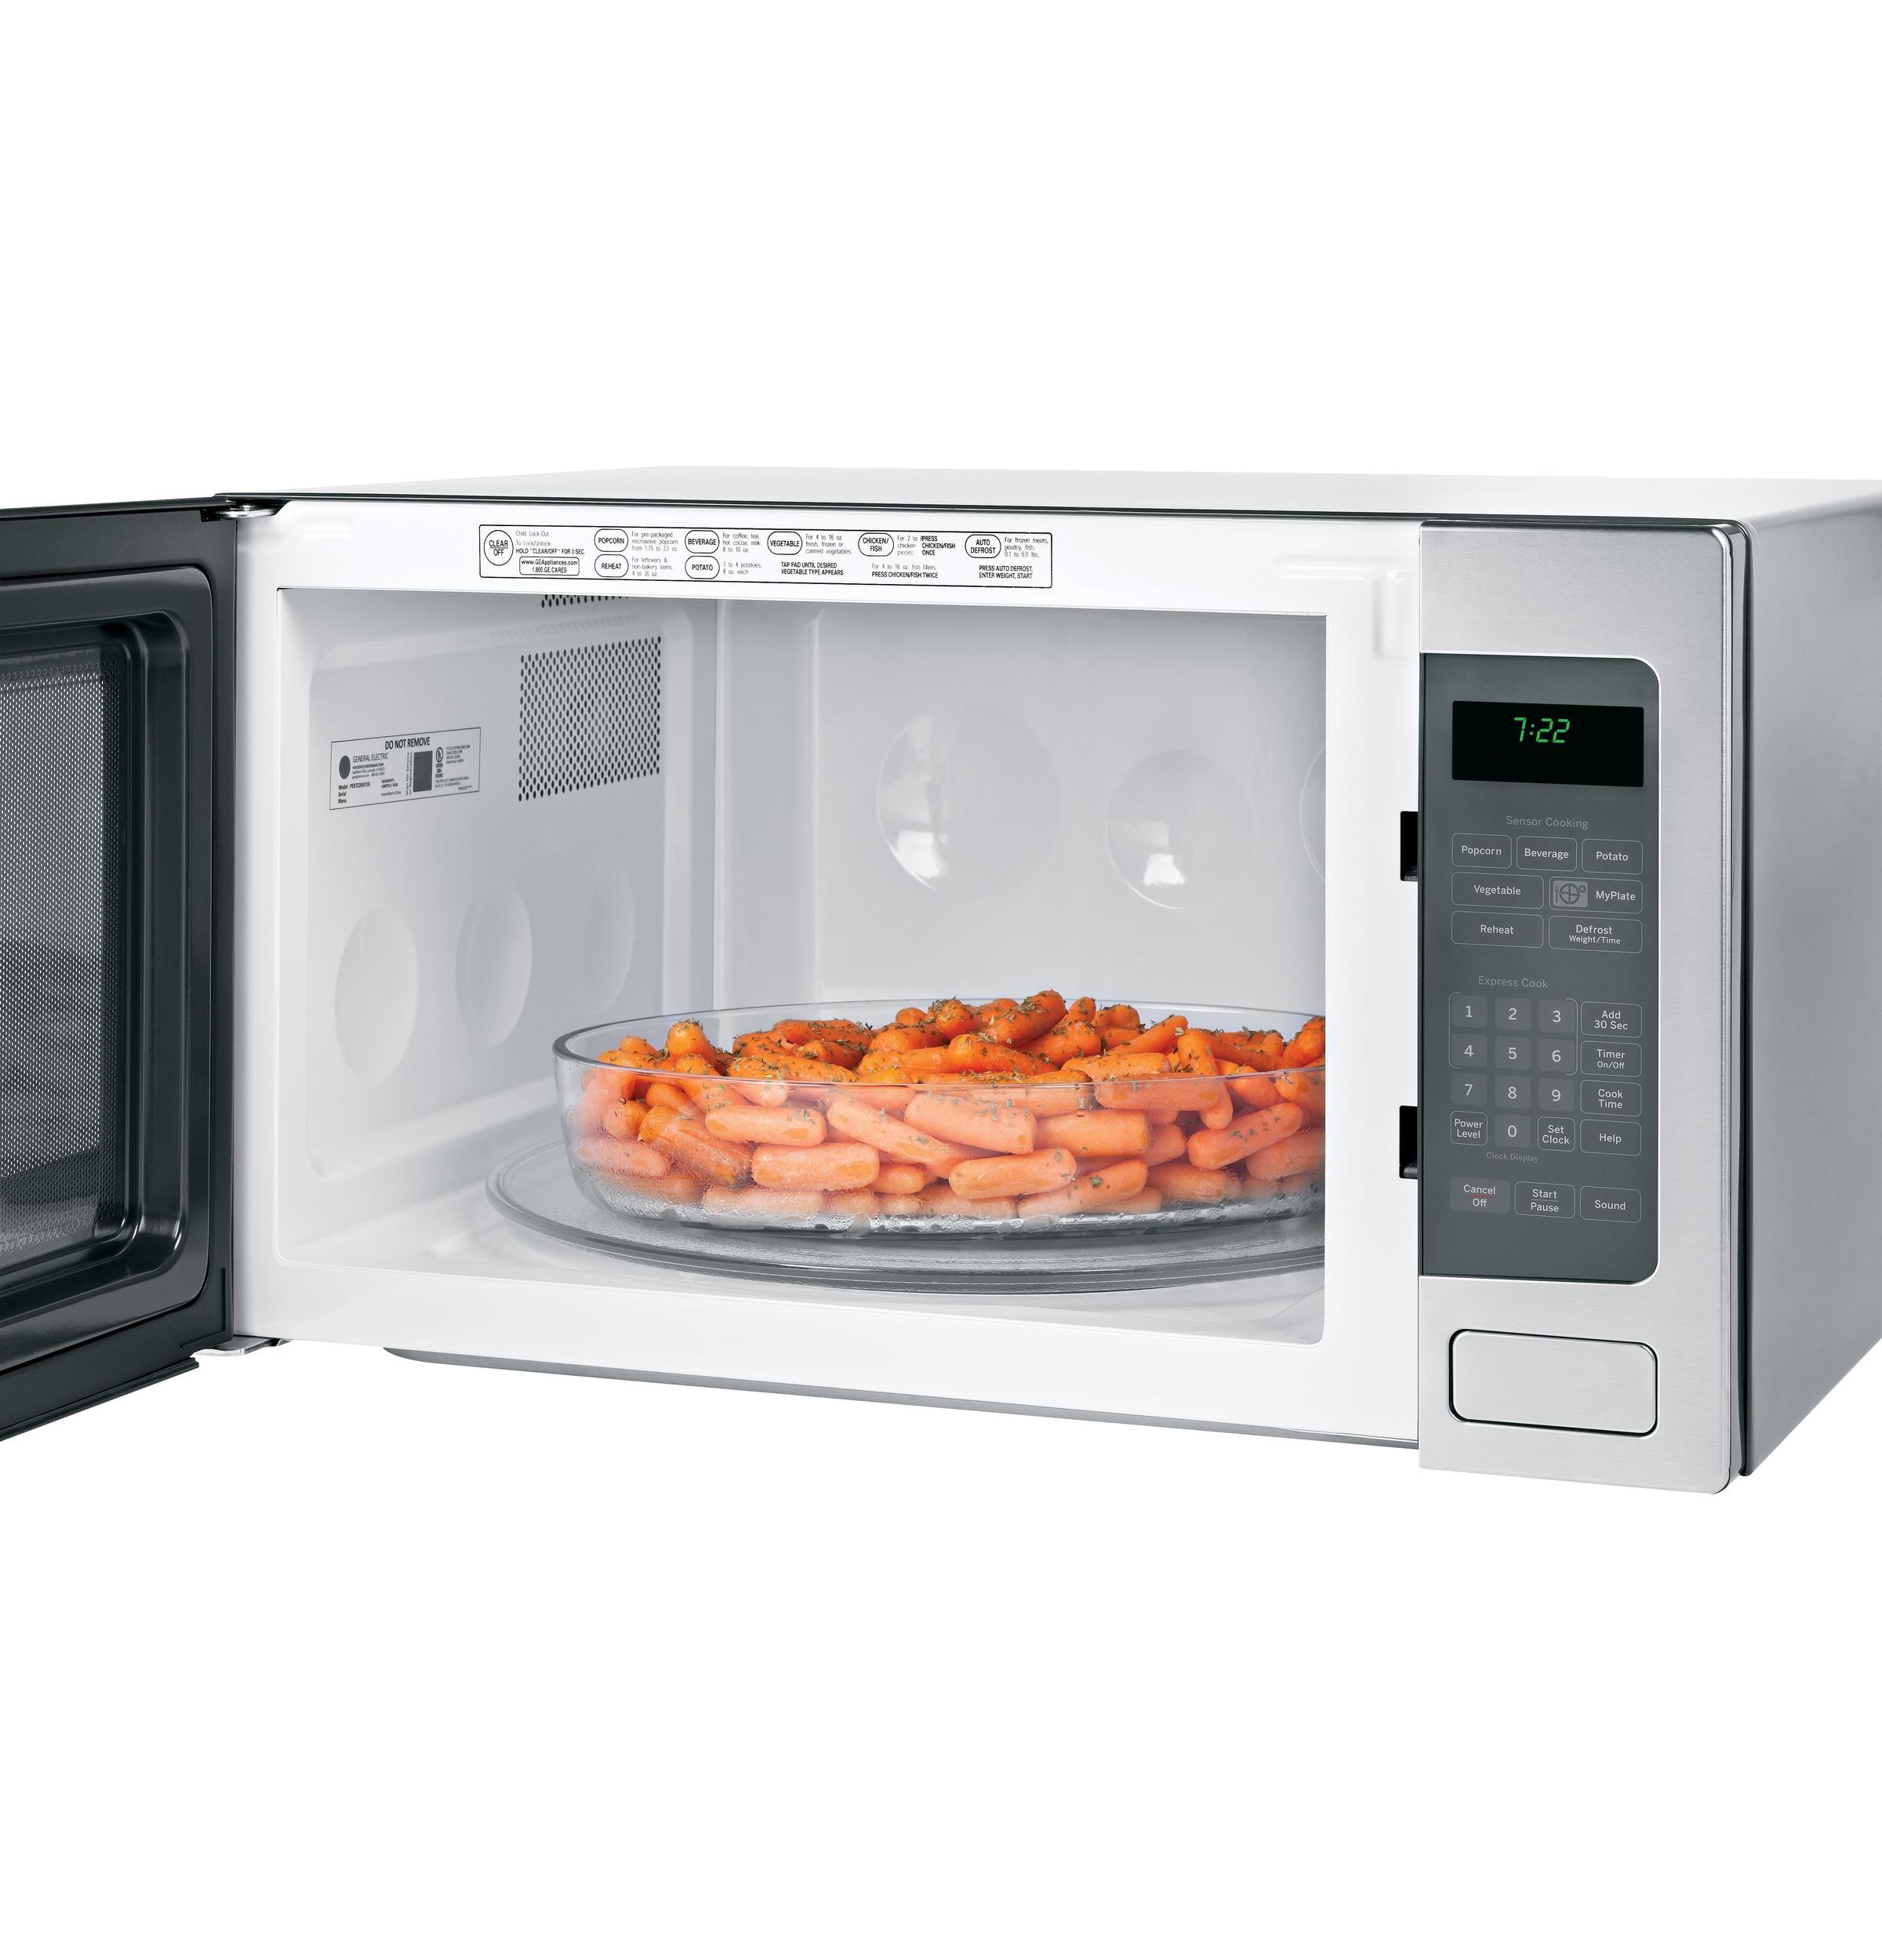 Microwave Oven Cookware